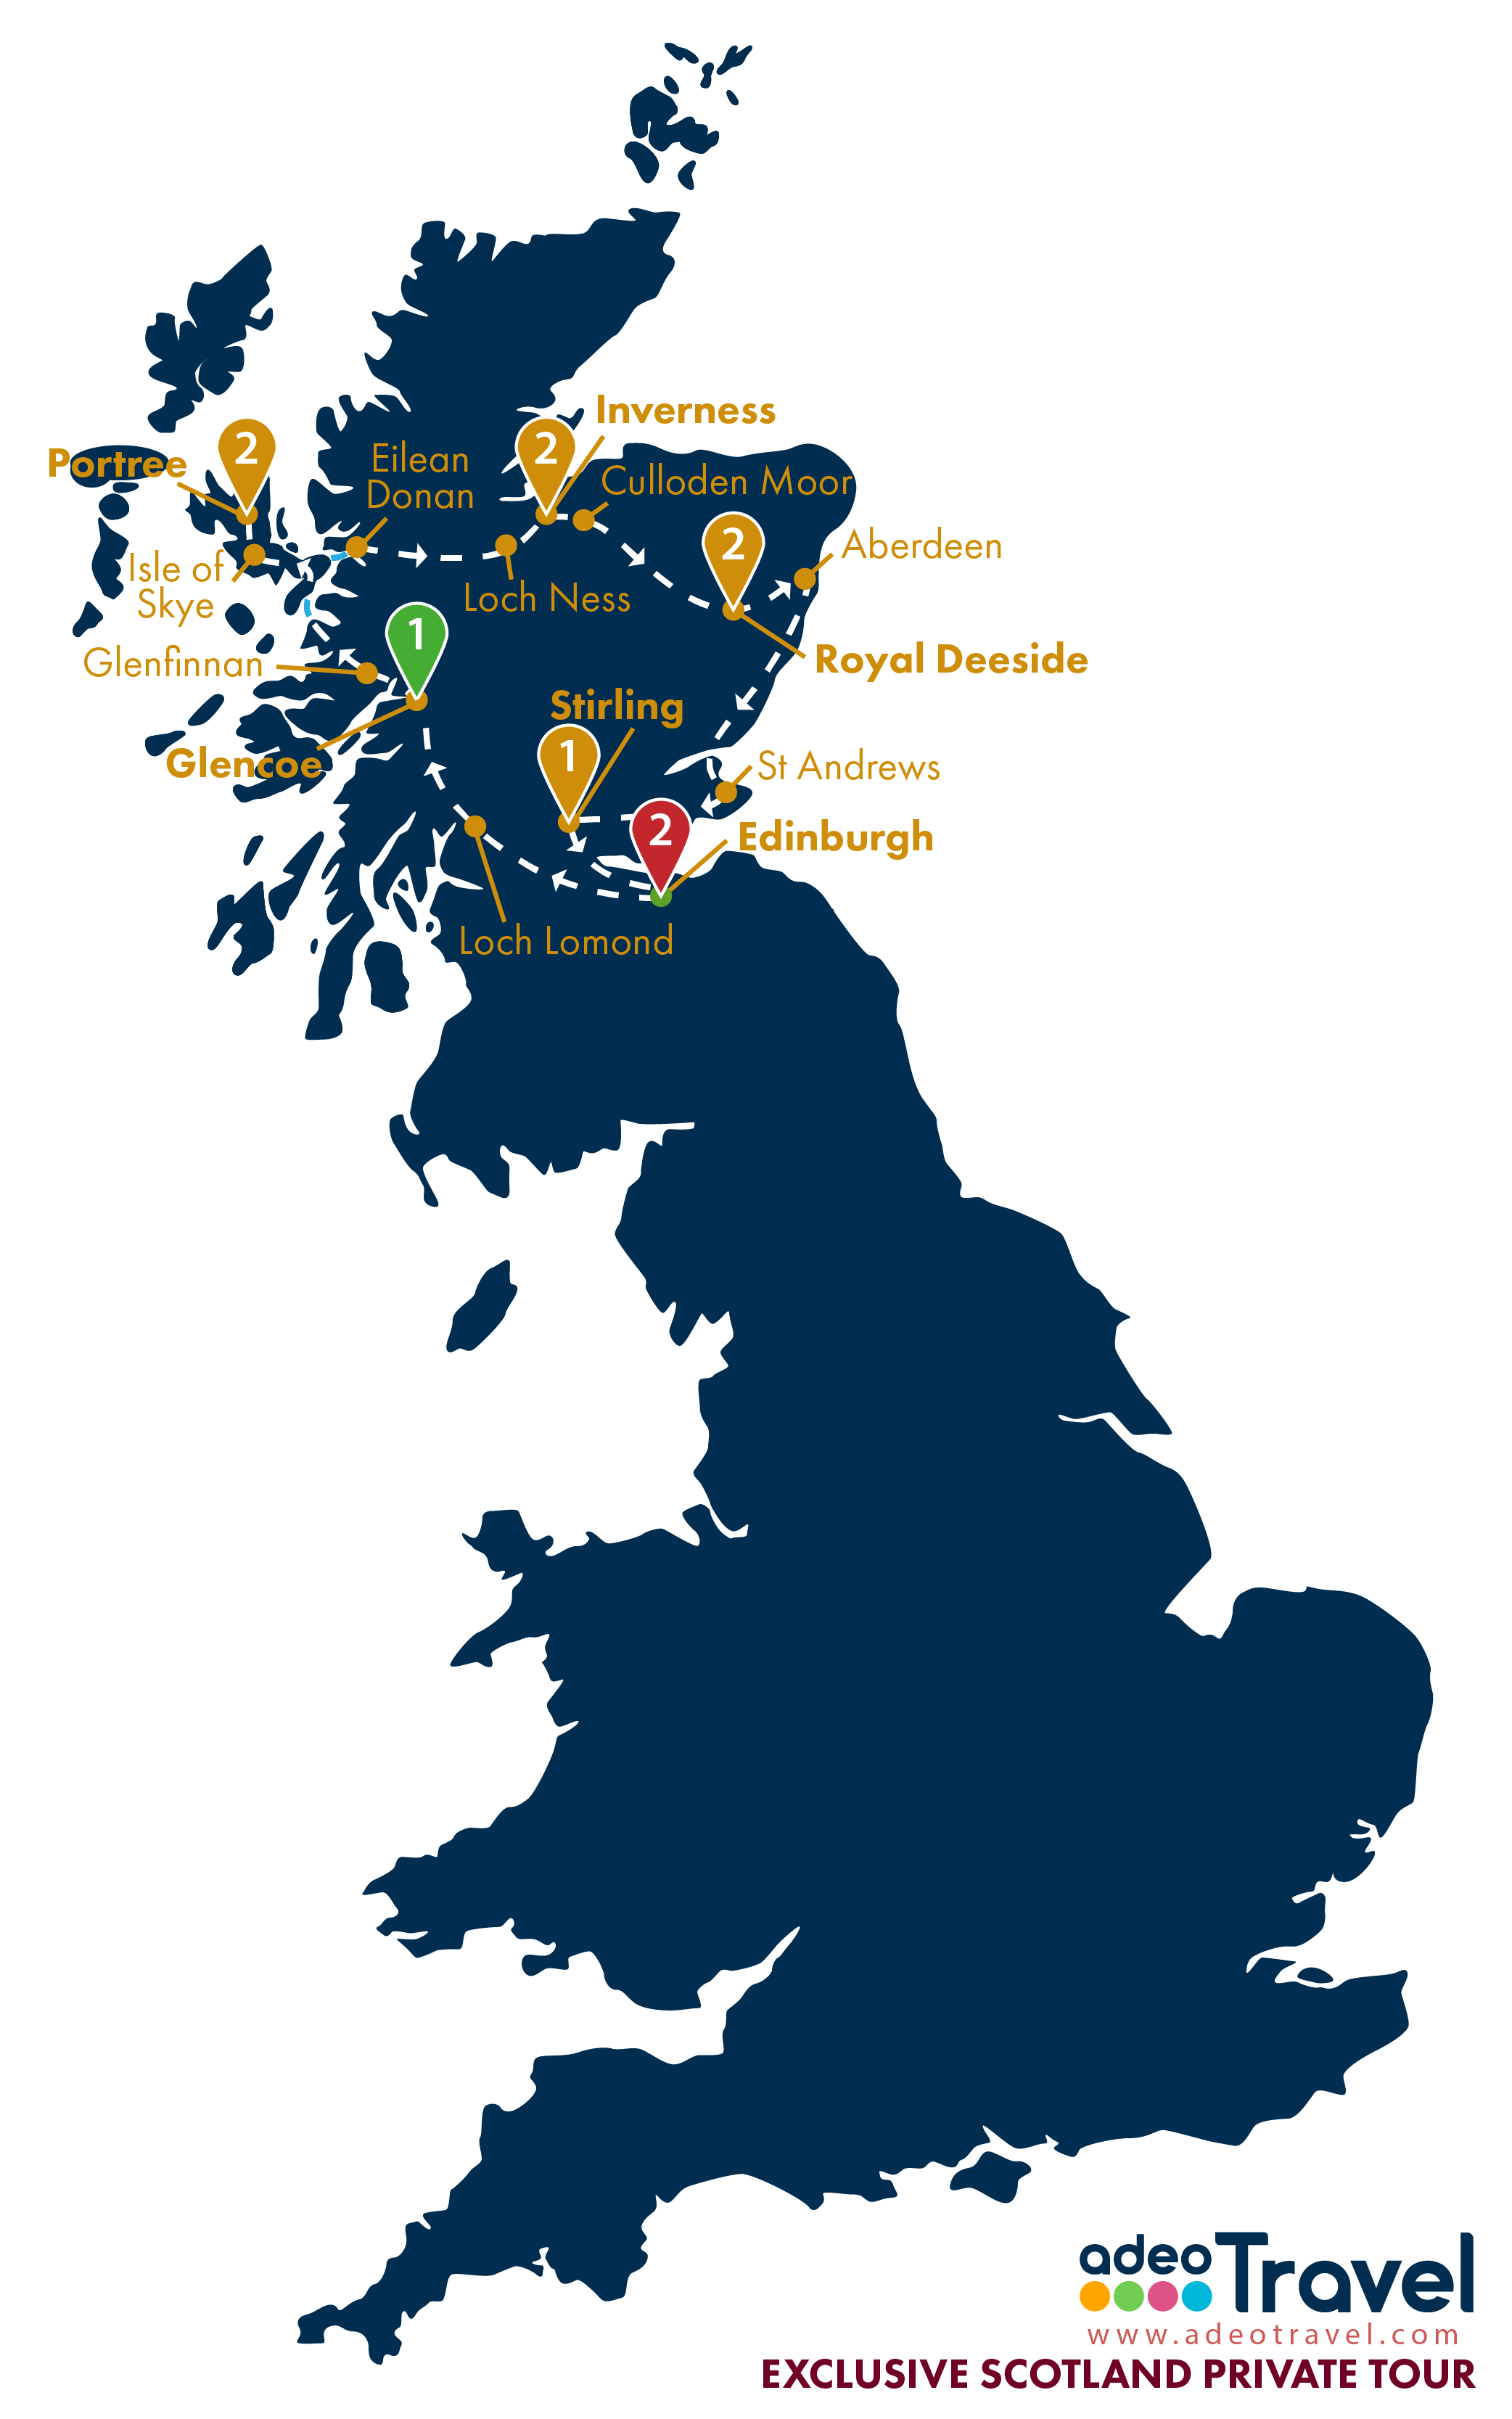 Map - Exclusive Scotland